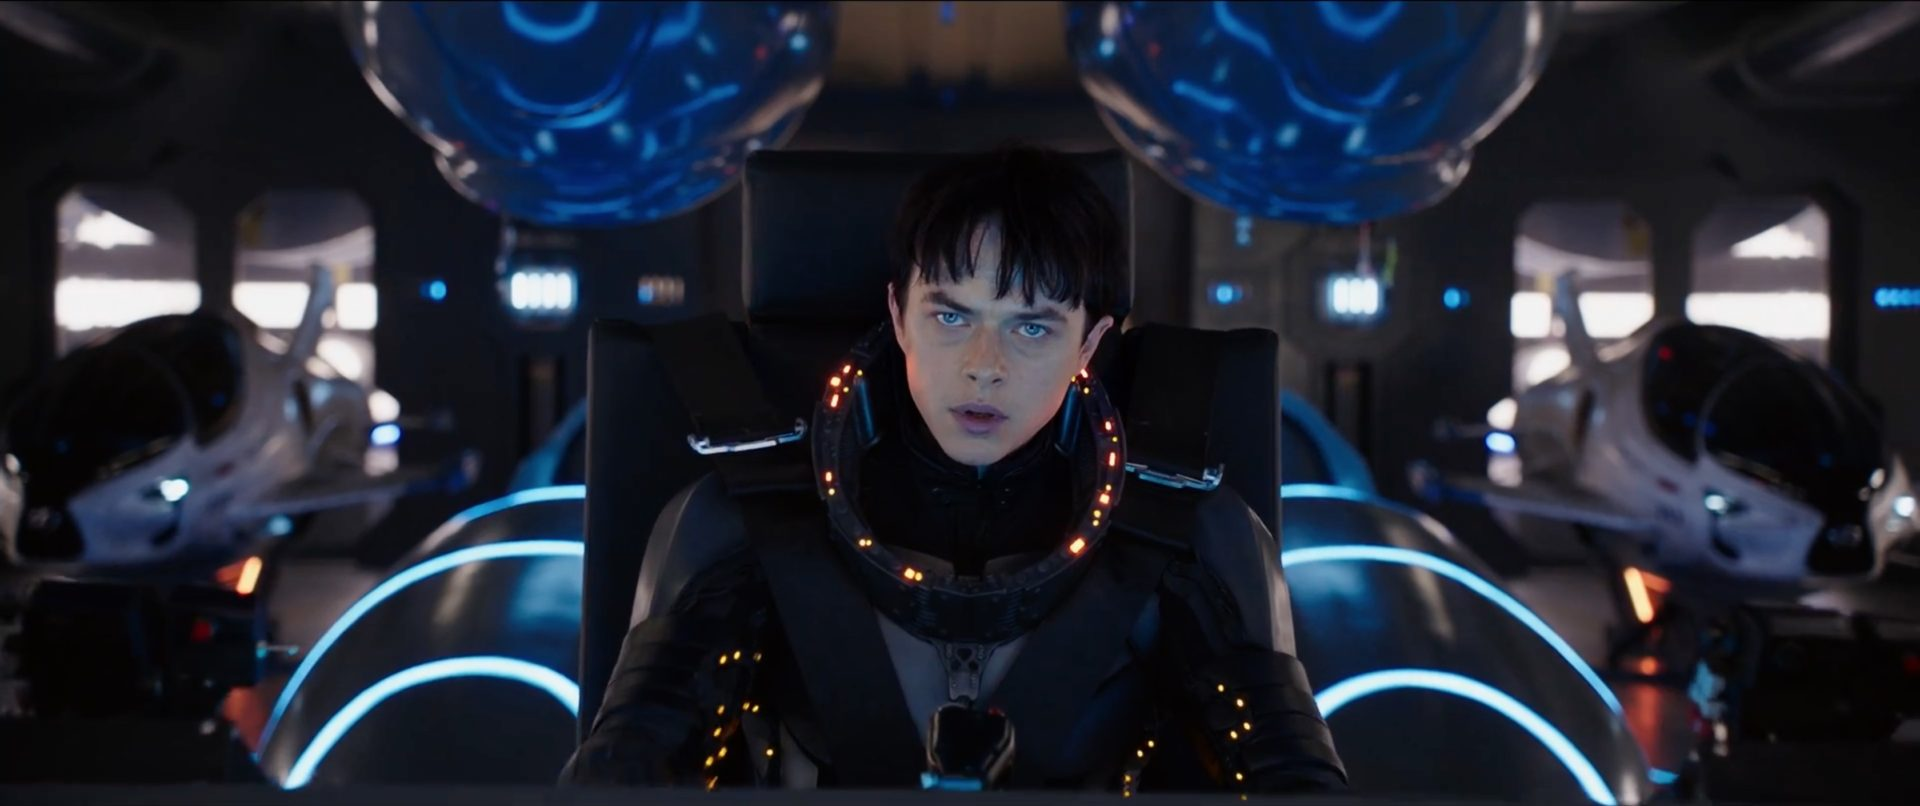 Valerian and the City of a Thousand Planets - Valerian e la città dei mille pianeti - pilot